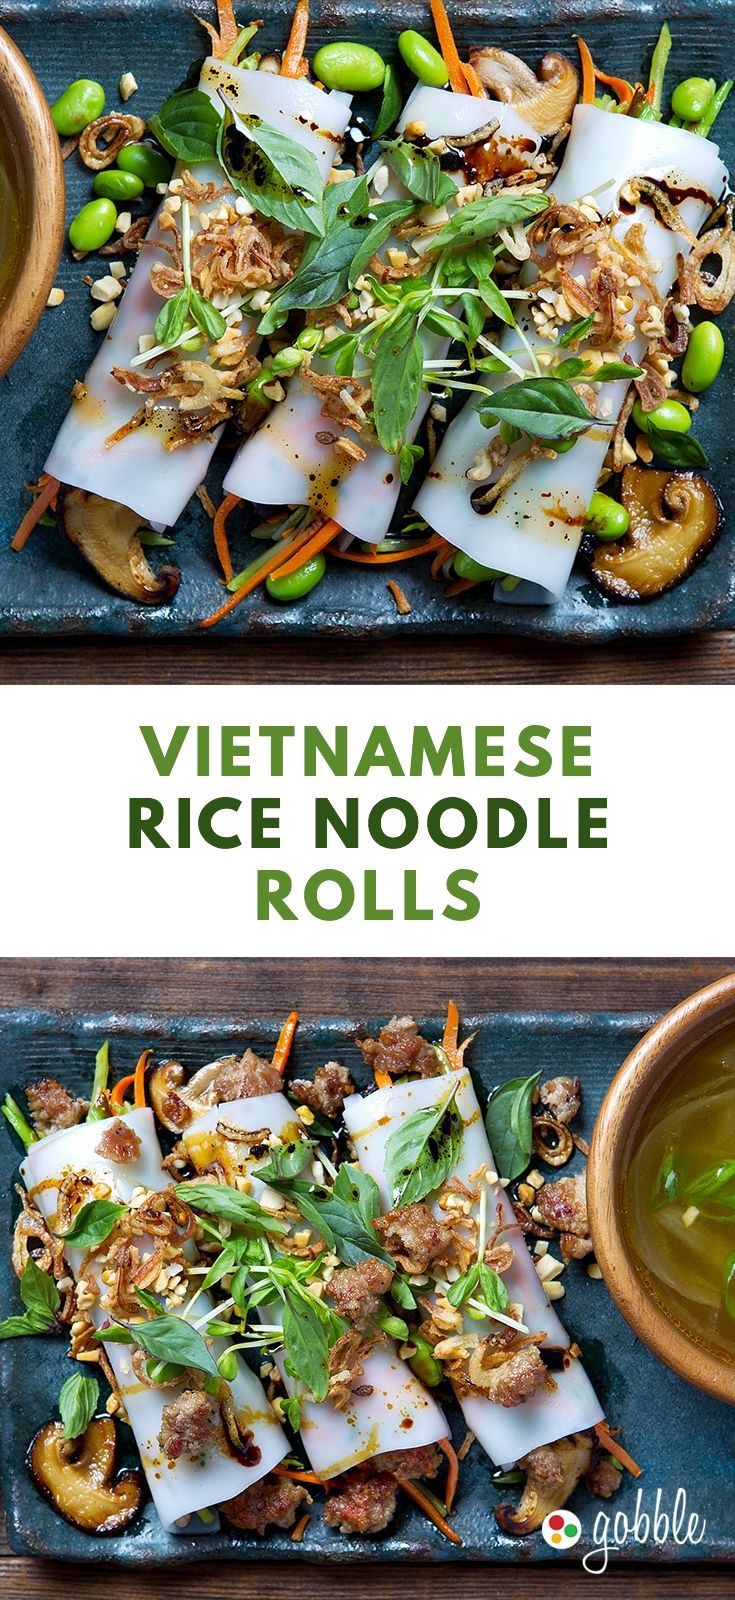 Gobble   Vietnamese Rice Noodle Rolls   Dinner For Two   Quick and Easy Recipes   New Recipes To Try   Cook At Home   Food Delivery Services   Healthy Meals Made With Fresh Ingredients   What To Have For Dinner   Dinner Recipes And Ideas   Easy Dinner Recipes   Gourmet Meals   $50 OFF